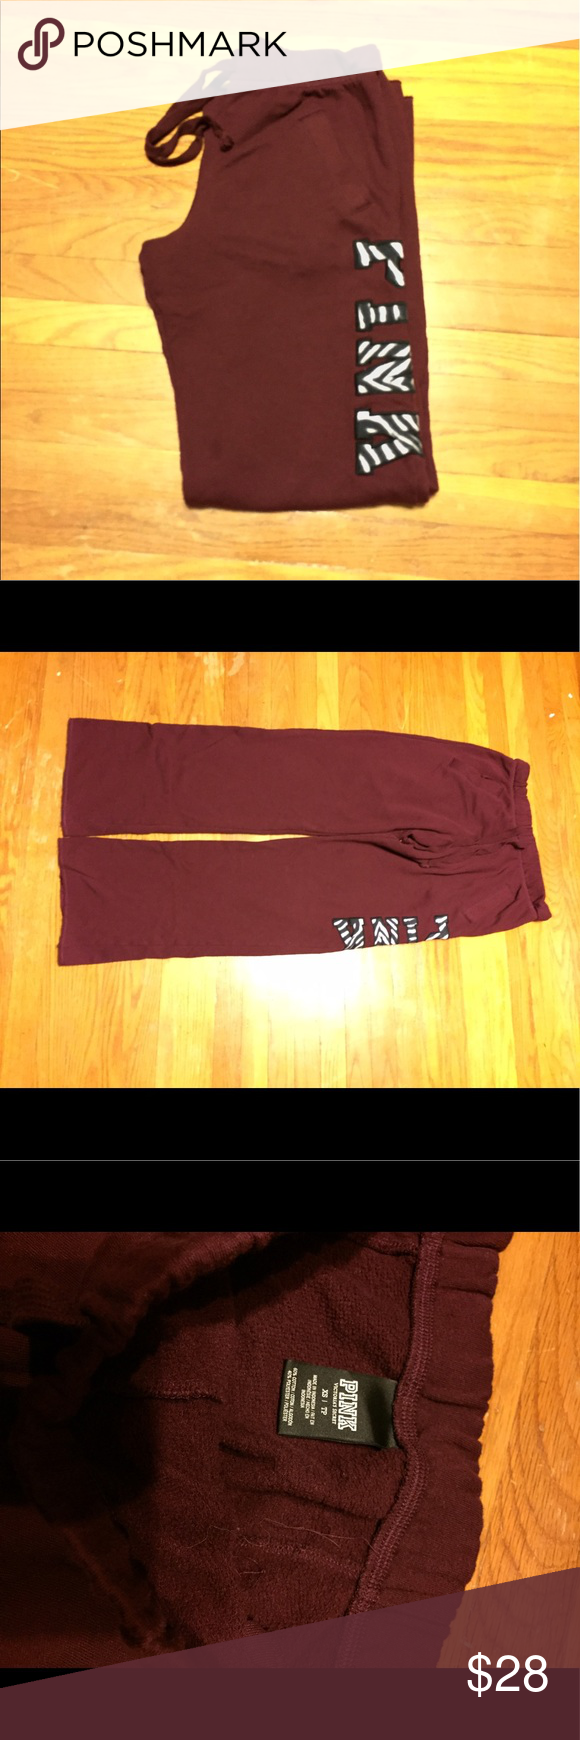 """VS PINK Boyfriend Pant Burgundy Boyfriend Pant • Like new barely worn • No rips or tears on bottoms of leg openings • Size XS but can fit a small, they are very oversized • 32"""" inseam PINK Victoria's Secret Other"""